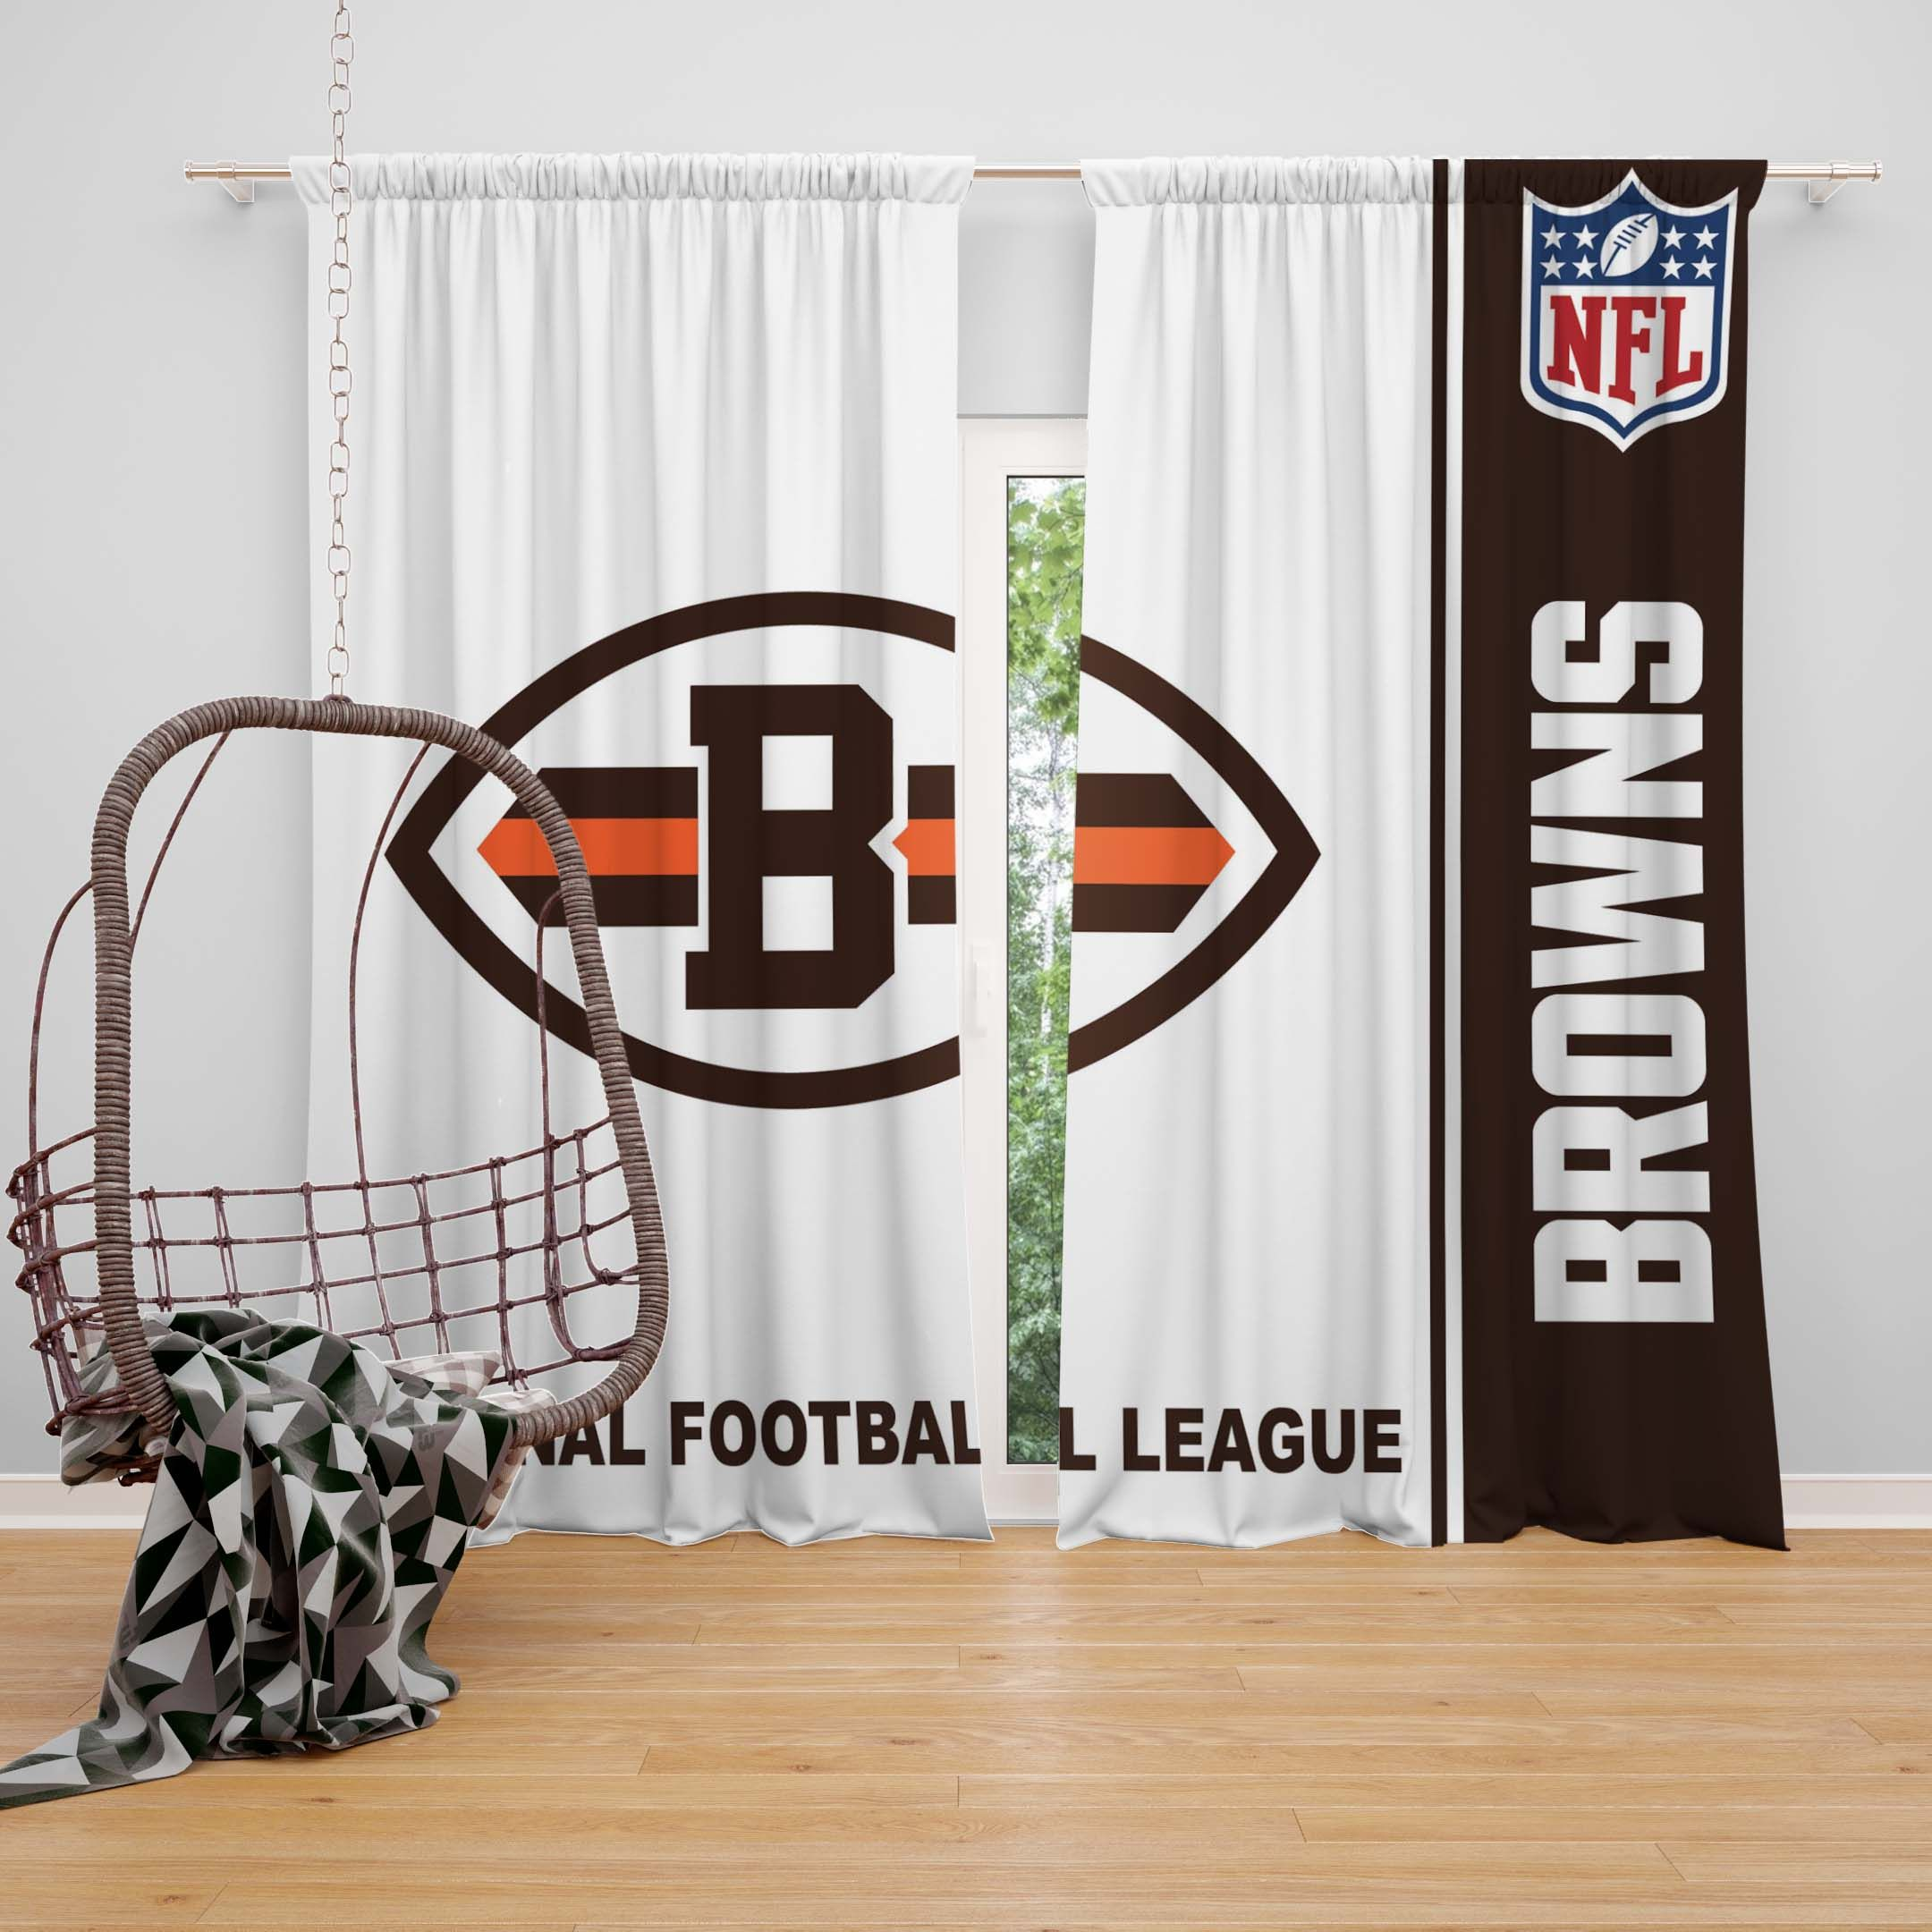 Nfl Cleveland Browns Bedroom Curtain Brown Curtains Bedroom Brown Bedroom Curtains Bedroom